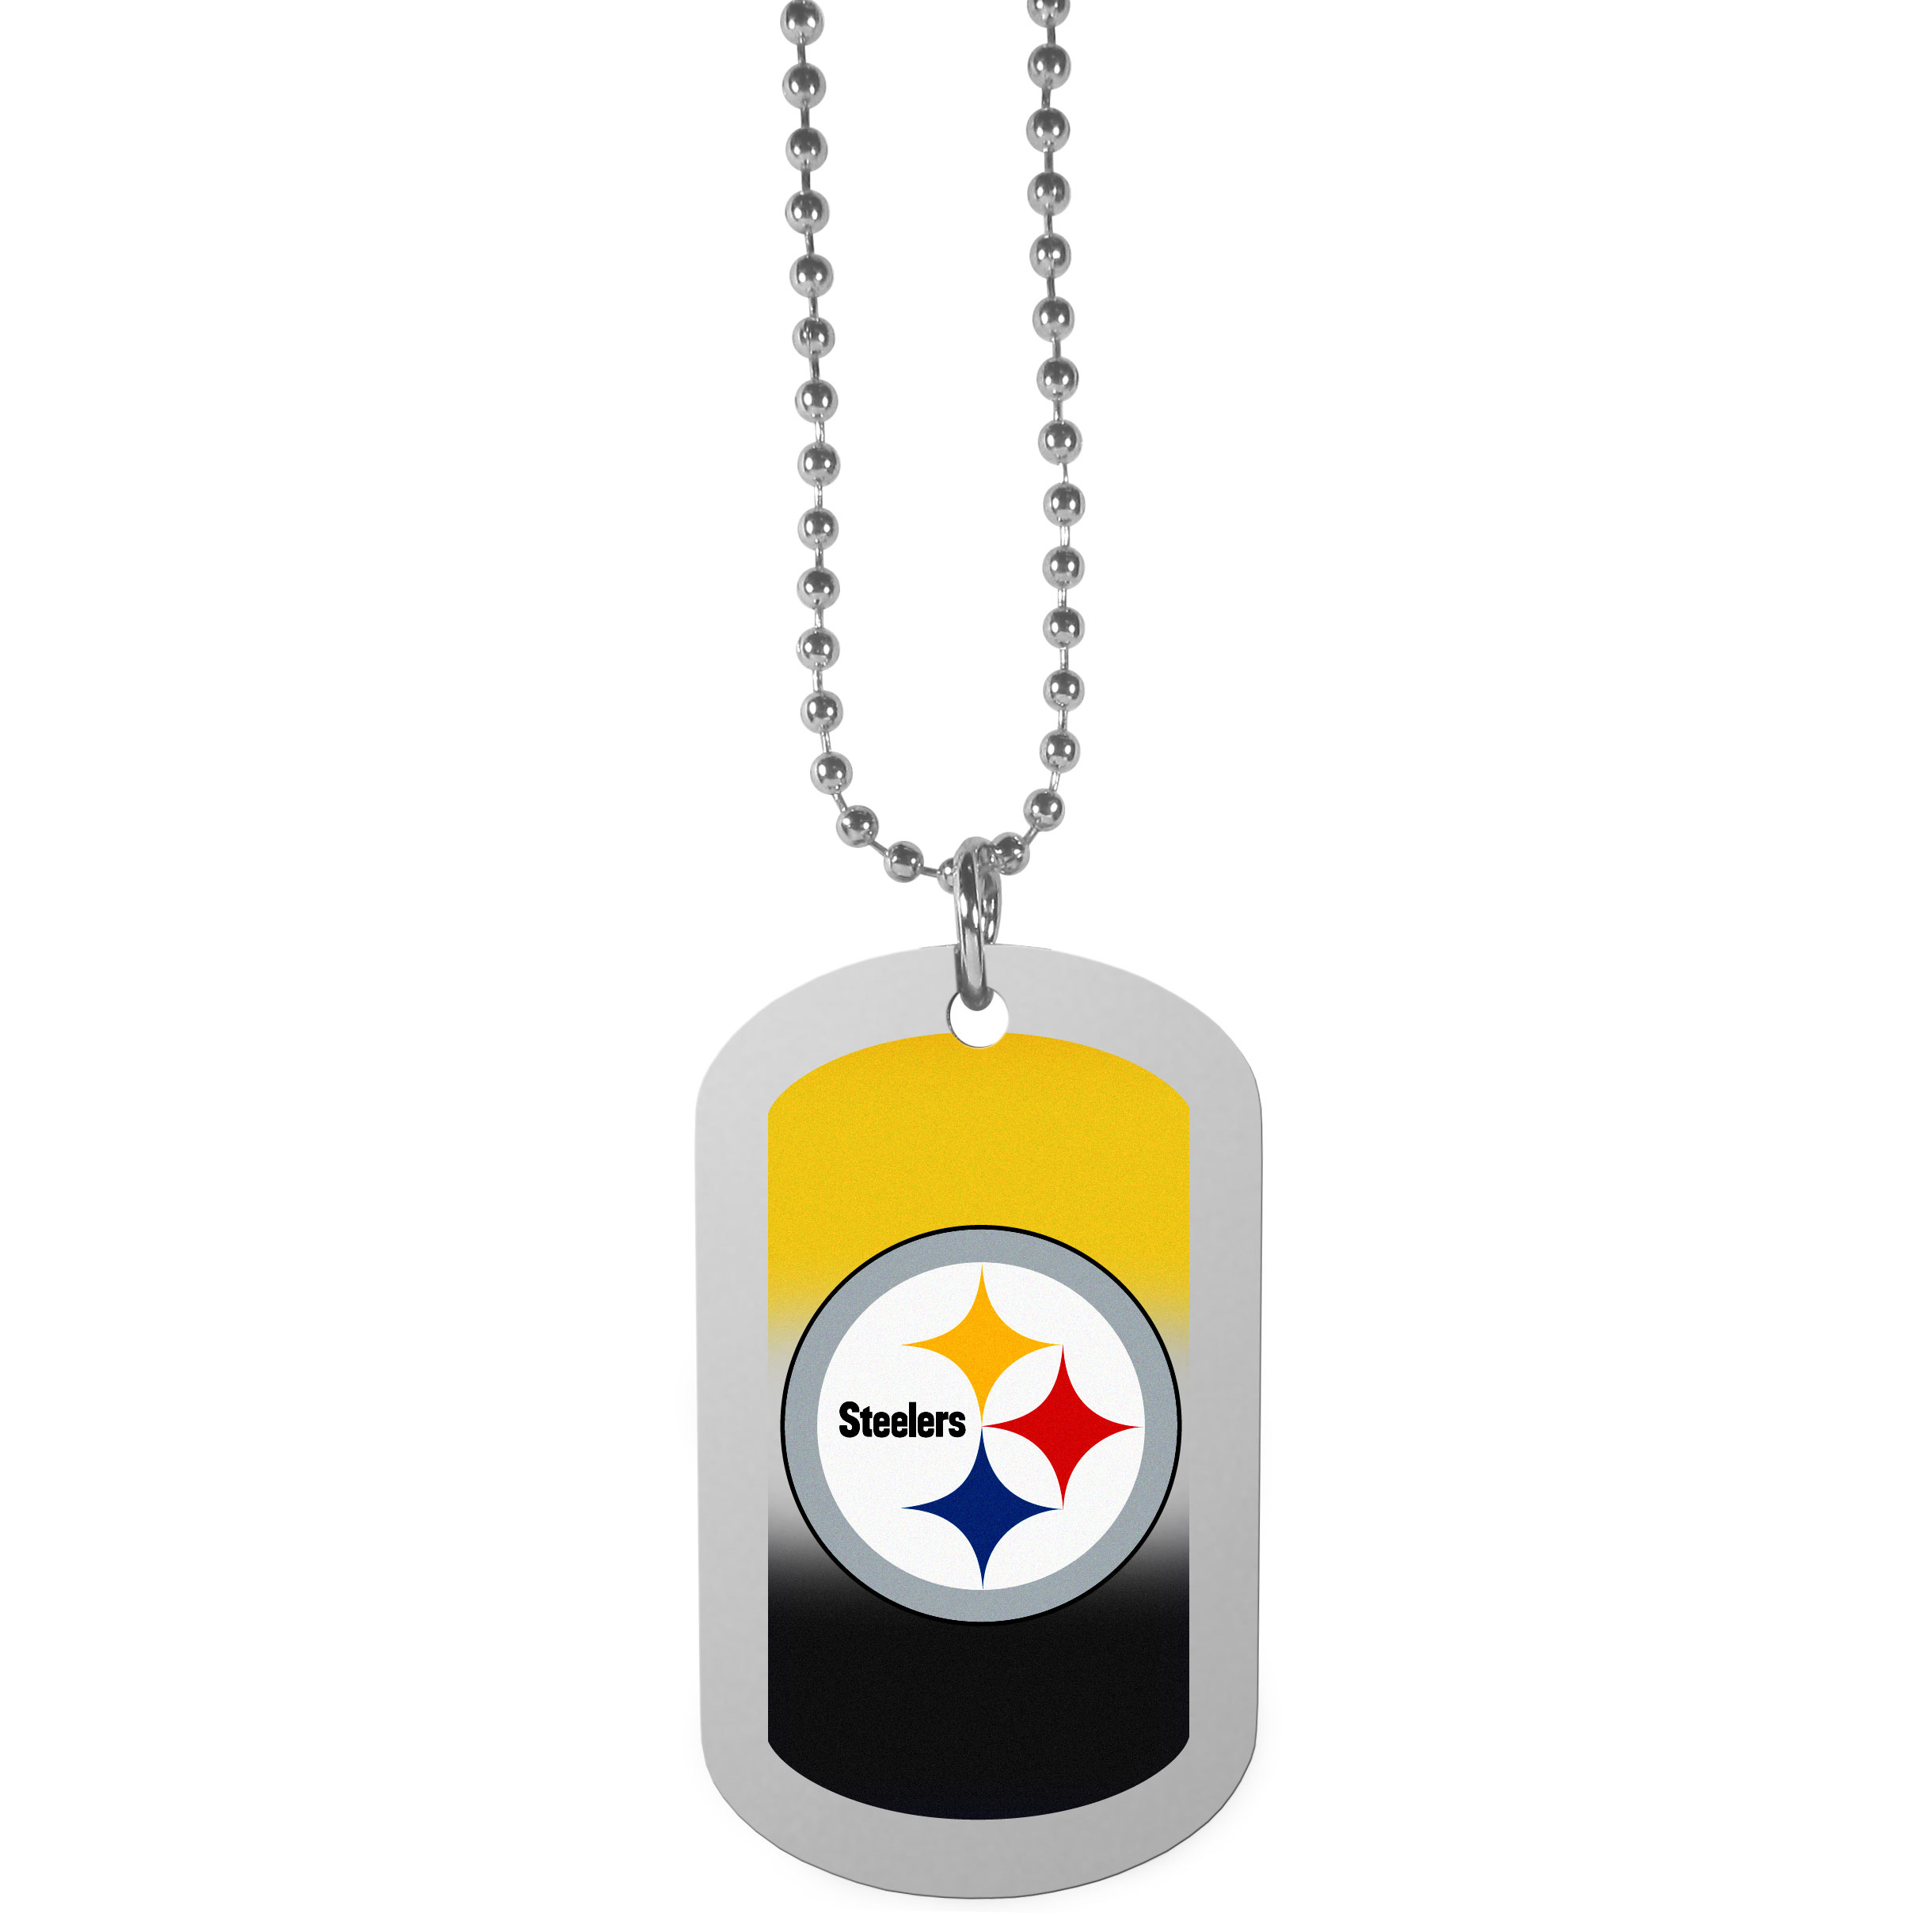 Pittsburgh Steelers Team Tag Necklace - Dog tag necklaces are a fashion statement that is here to stay. The sporty version of the classic tag features a gradient print in team colors featuring a full color team logo over a high polish tag to create a bold and sporty look. The tag comes on a 26 inch ball chain with a ball and joint clasp. Any Pittsburgh Steelers would be proud to wear this attractive fashion accessory.